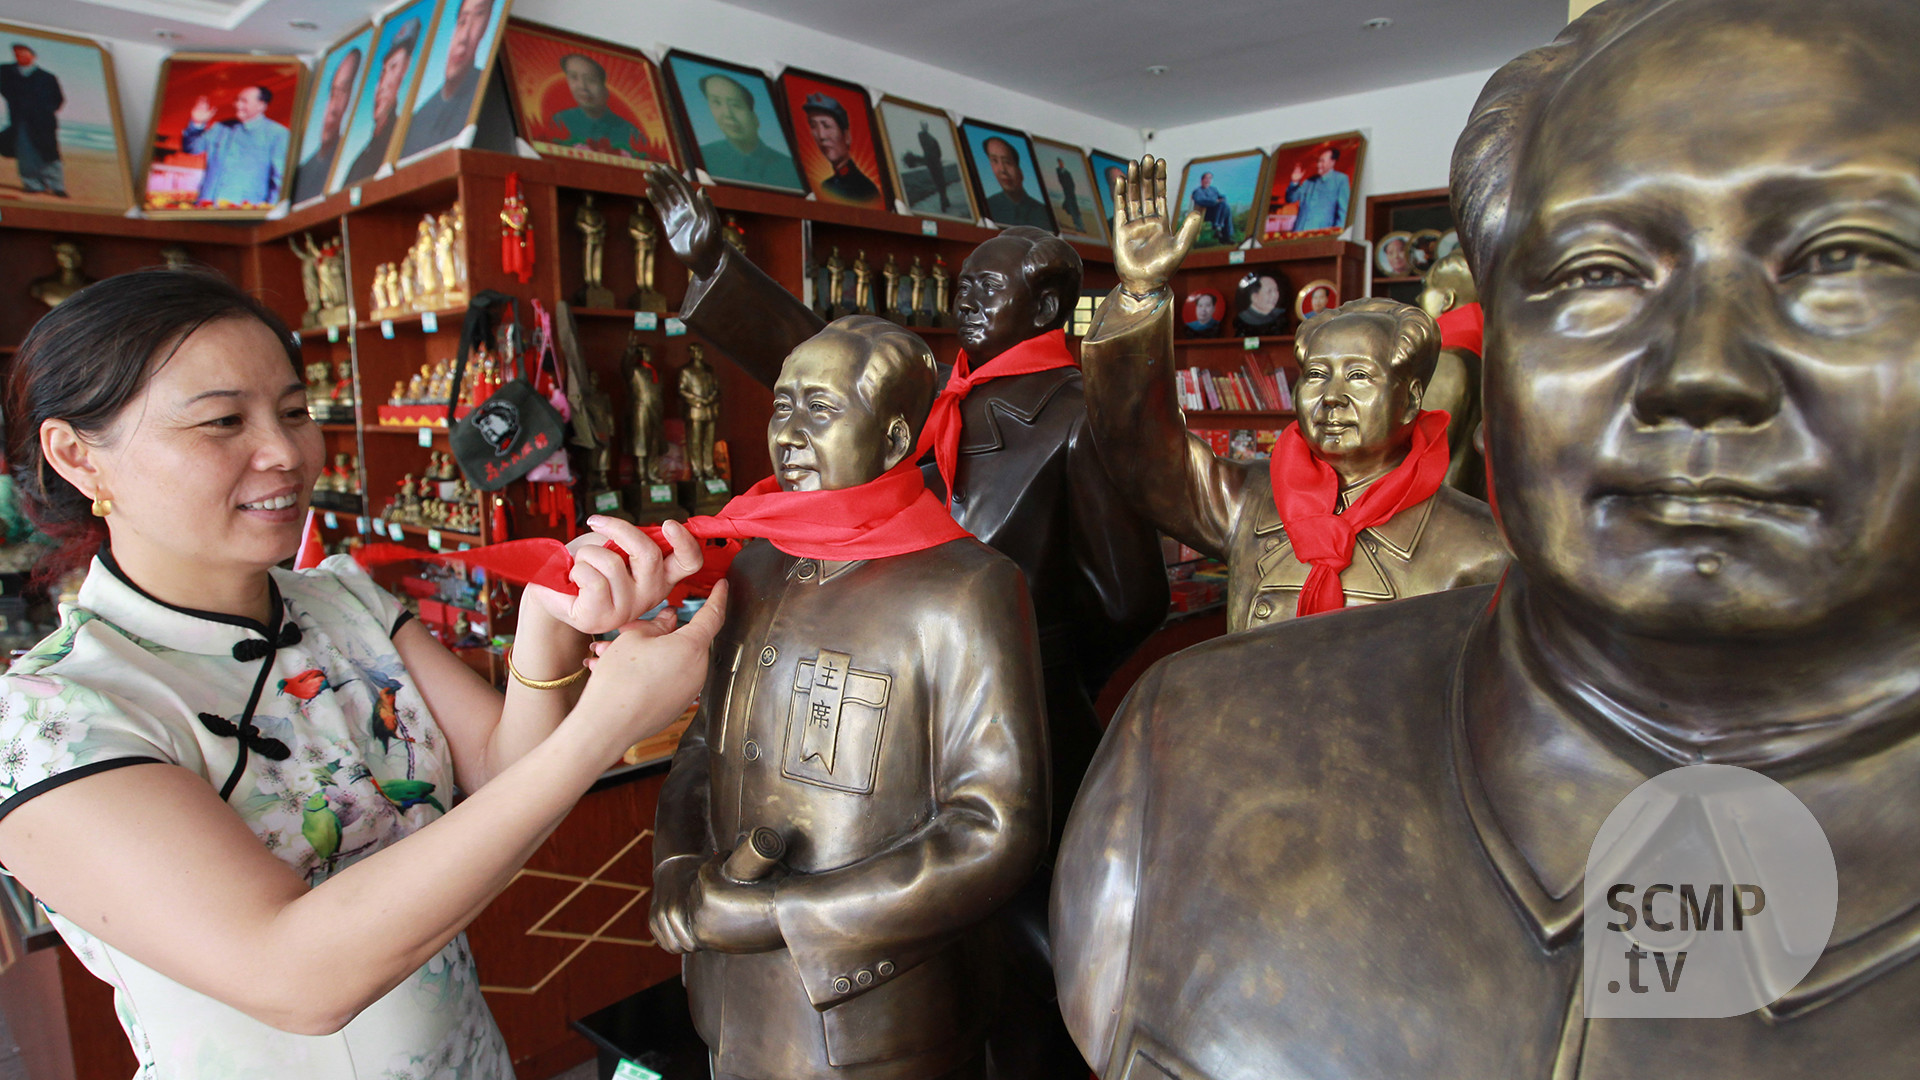 Res: 1920x1080, 40 years after his death, Chairman Mao remains popular in his hometown |  South China Morning Post